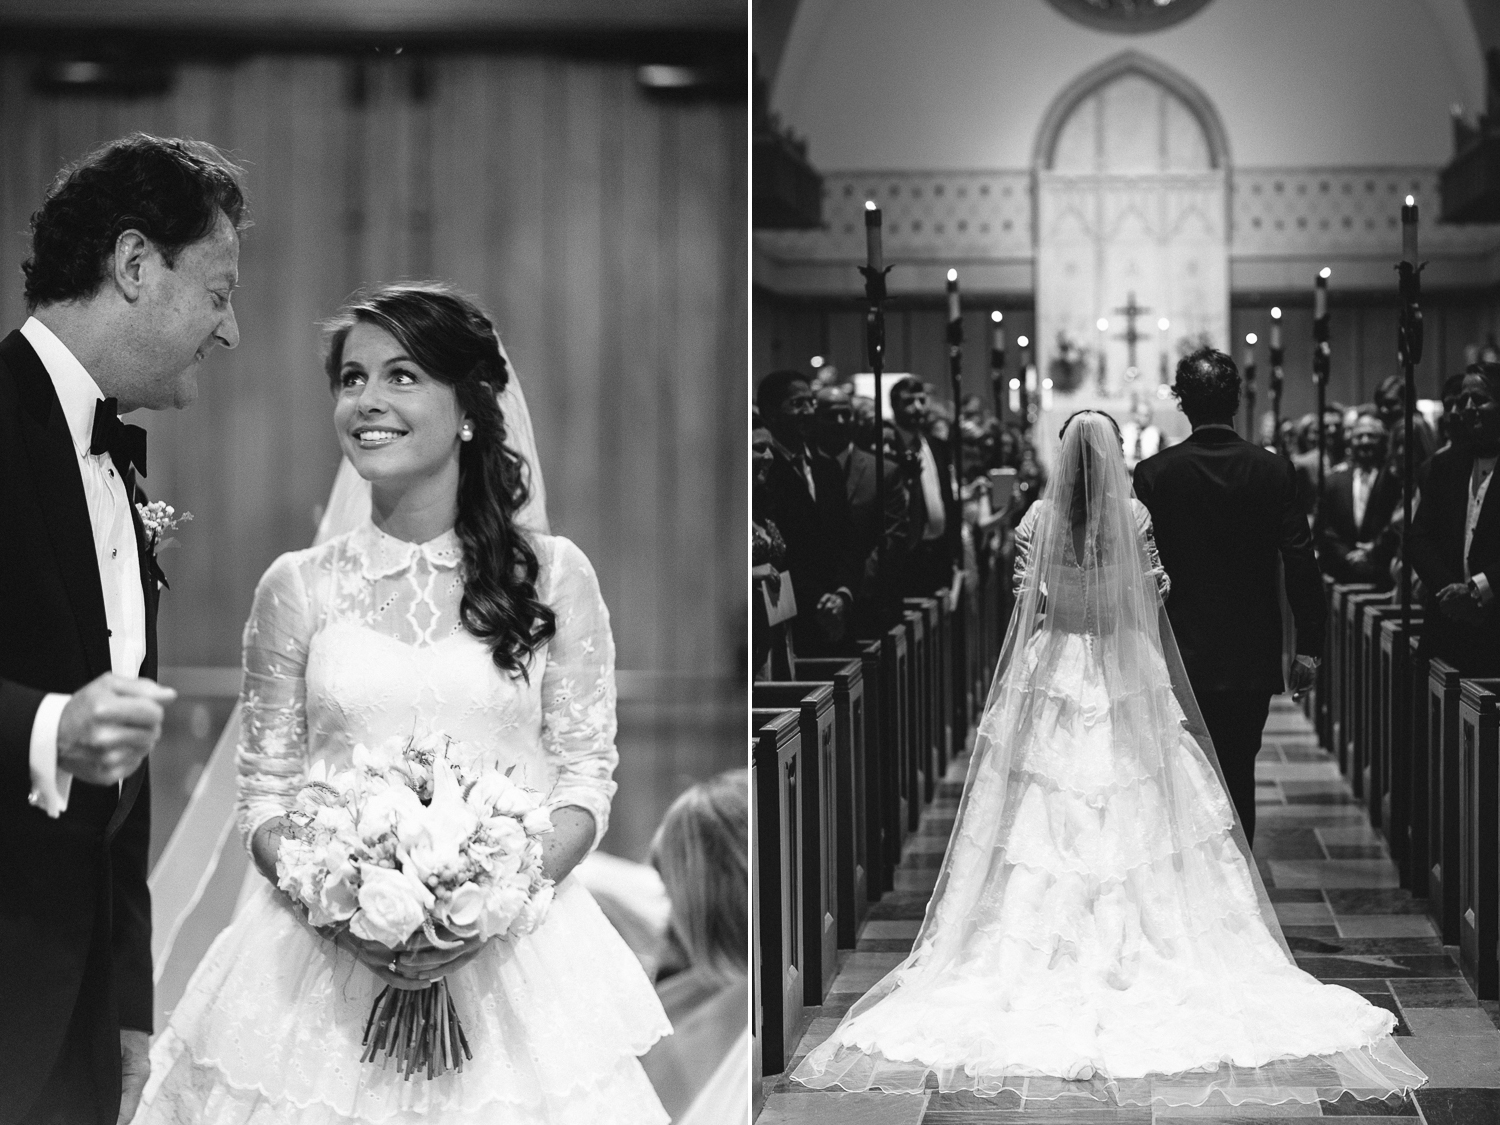 Beautiful bride with cathedral vail walking down the aisle